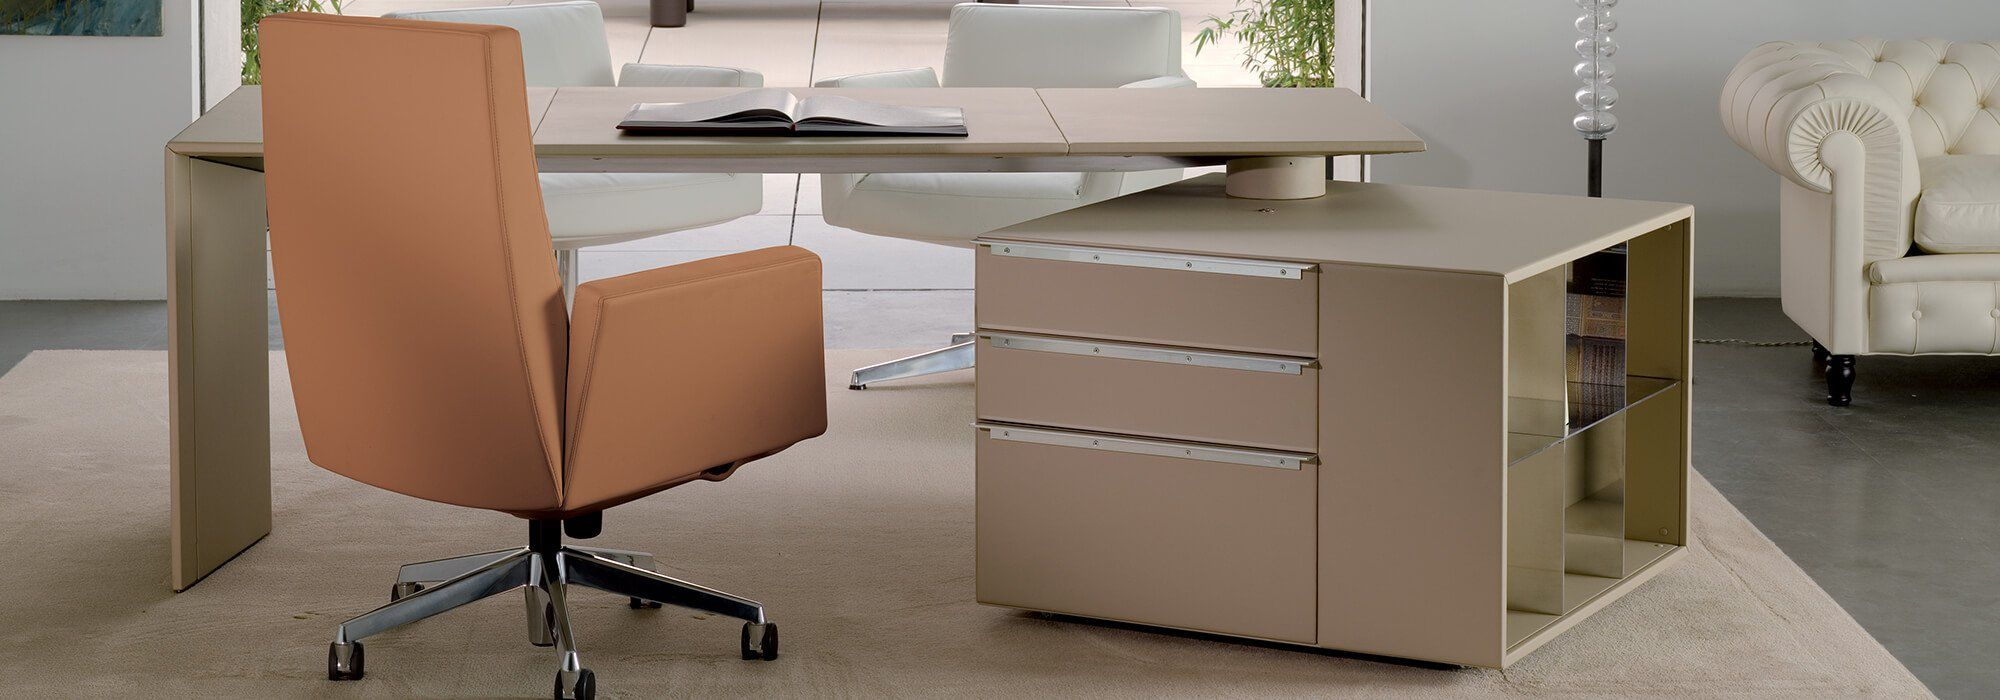 cubes of style to storage designs diy you with unique collection suit your desk can customize